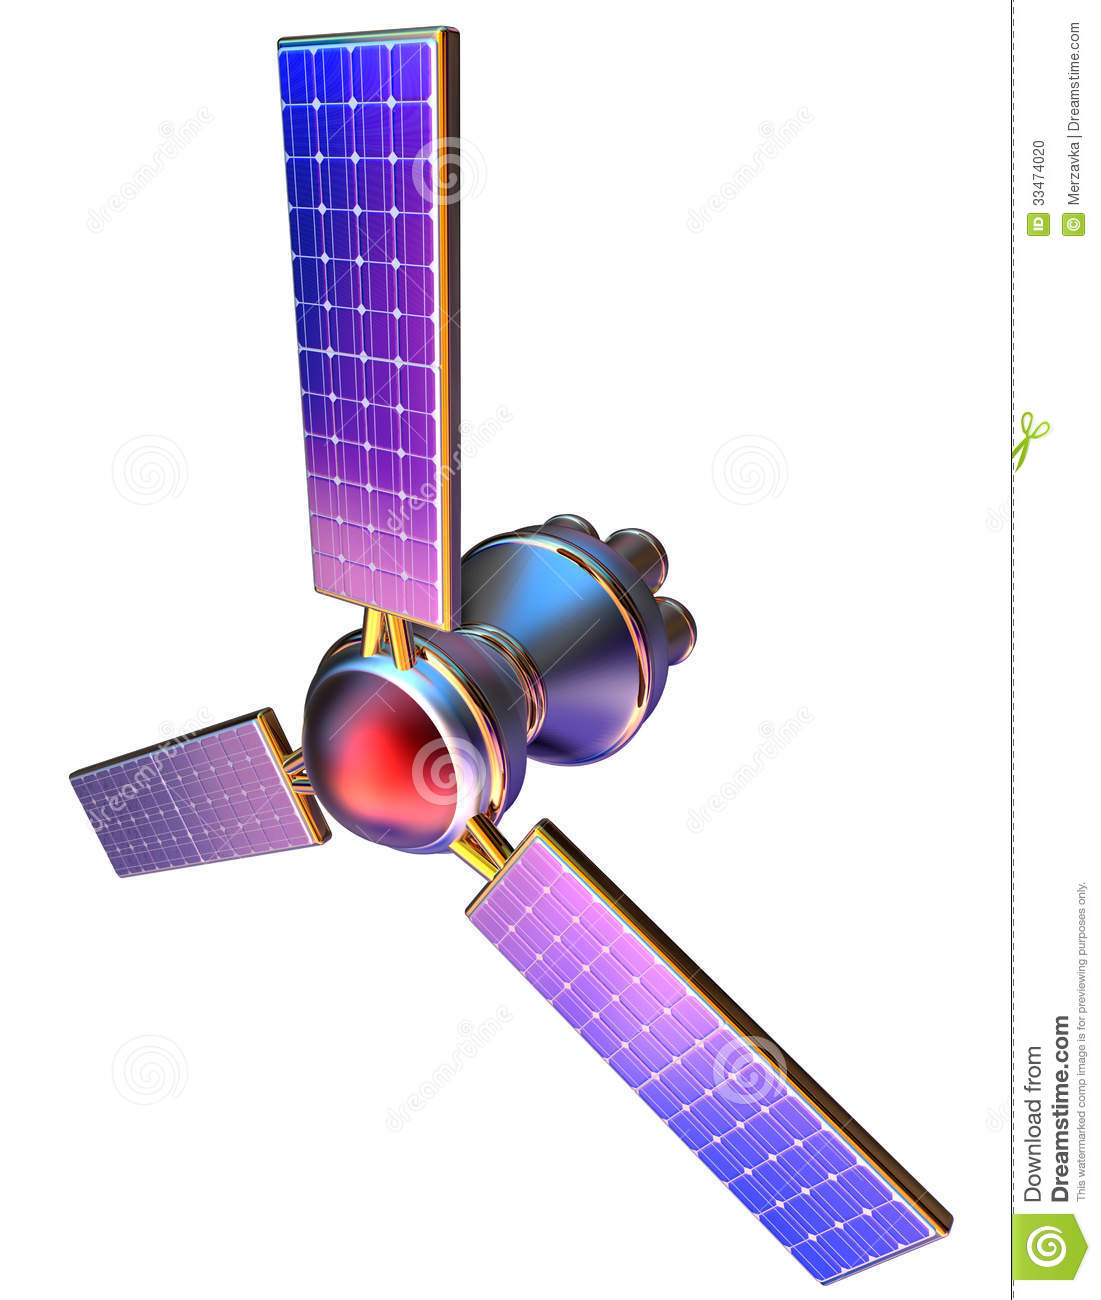 3d Model Of An Artificial Satellite Of The Earth Stock